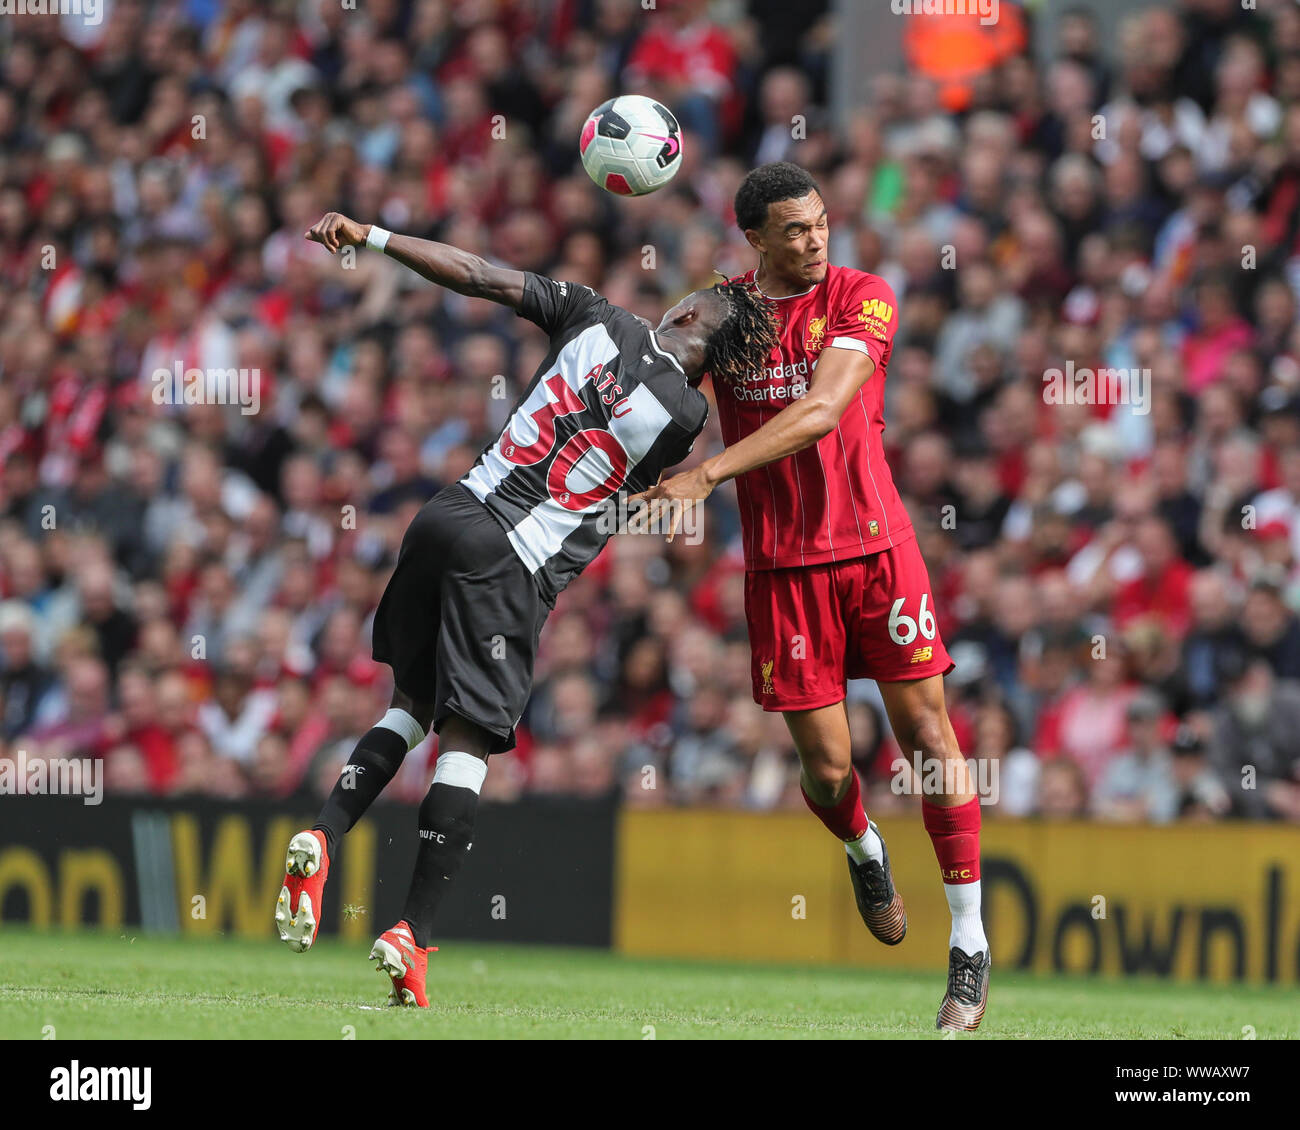 14th September 2019 , Anfield, Liverpool, England; Premier League Football,  Liverpool vs Newcastle United ; Trent Alexander-Arnold (66) of Liverpool  and Christian Atsu (30) of Newcastle United dual for the ball Credit: